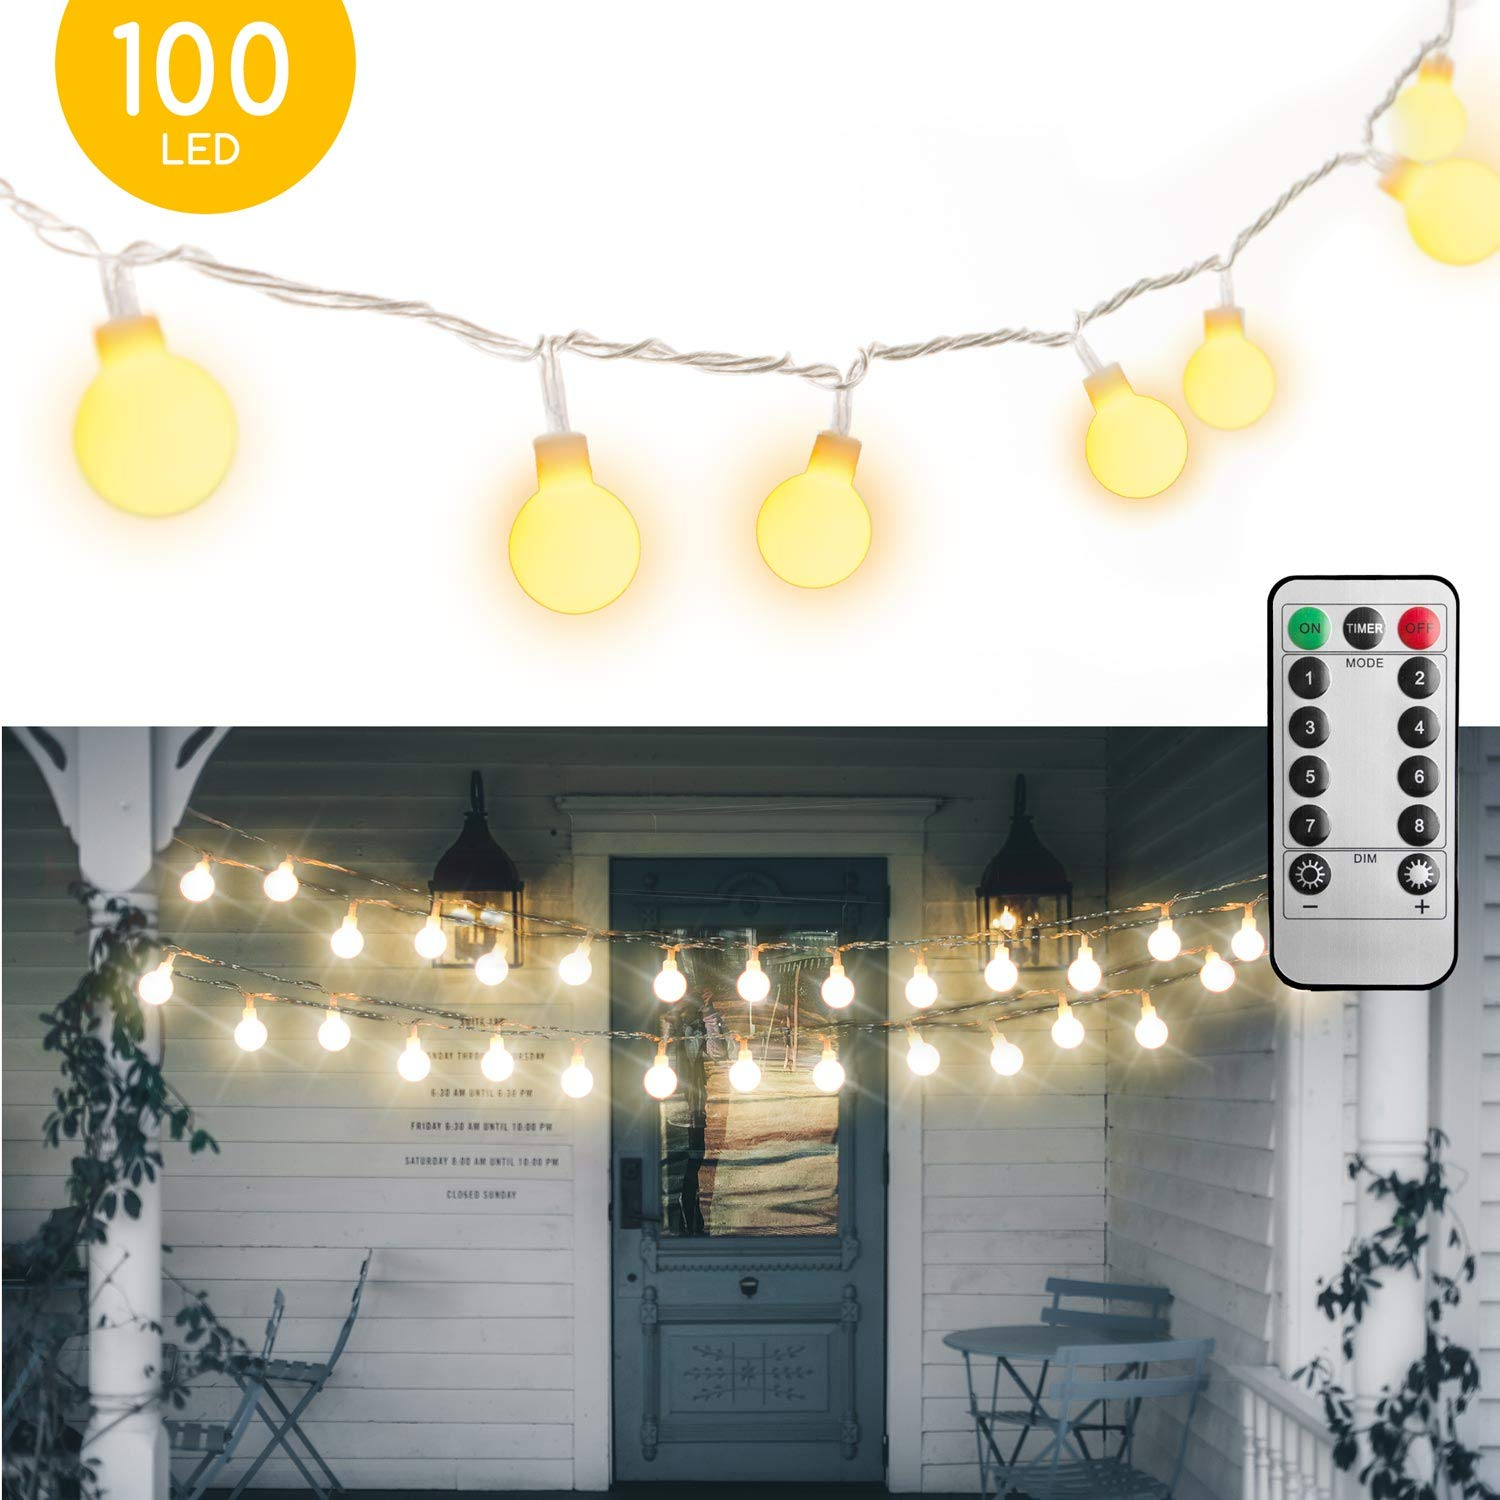 [Remote & Timer] 33Ft Globe String Lights 100LED Fairy Twinkle Lights with Remote 8 Modes Controller & UL Listed Adaptor Plug-for Patio/Party/Garden/Wedding Decor, Warm White